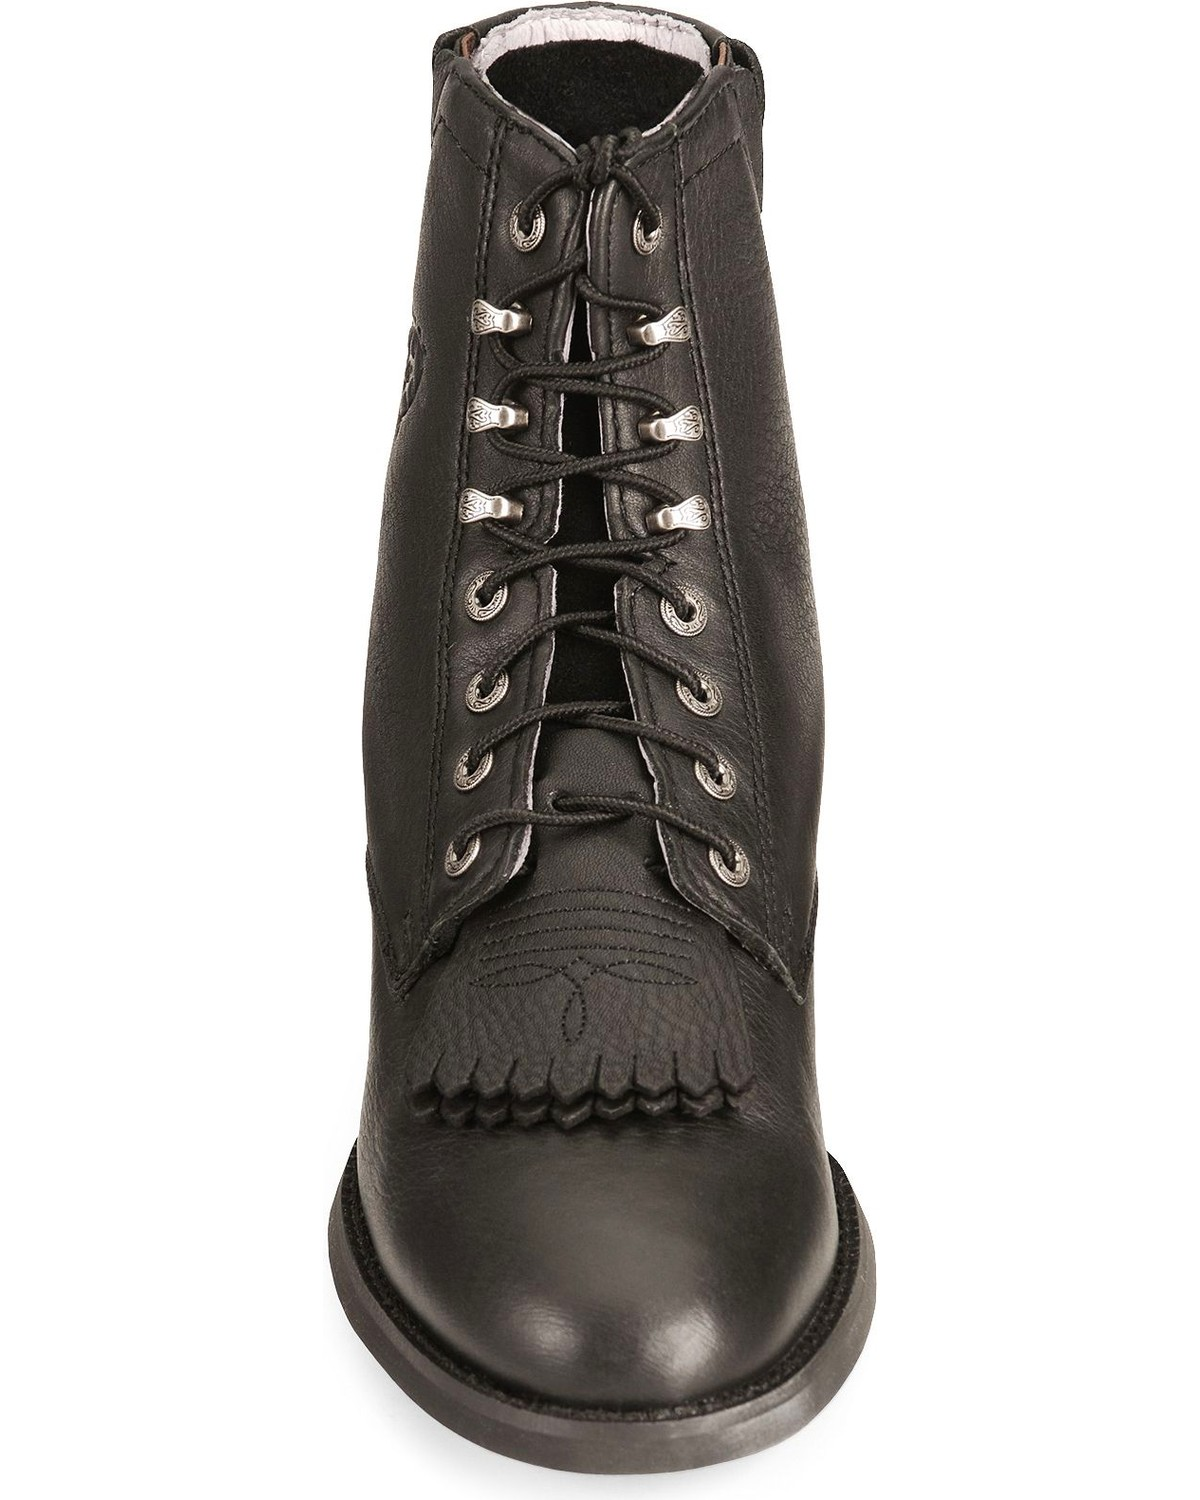 Ariat Women's Heritage II Lacer Boots | Sheplers